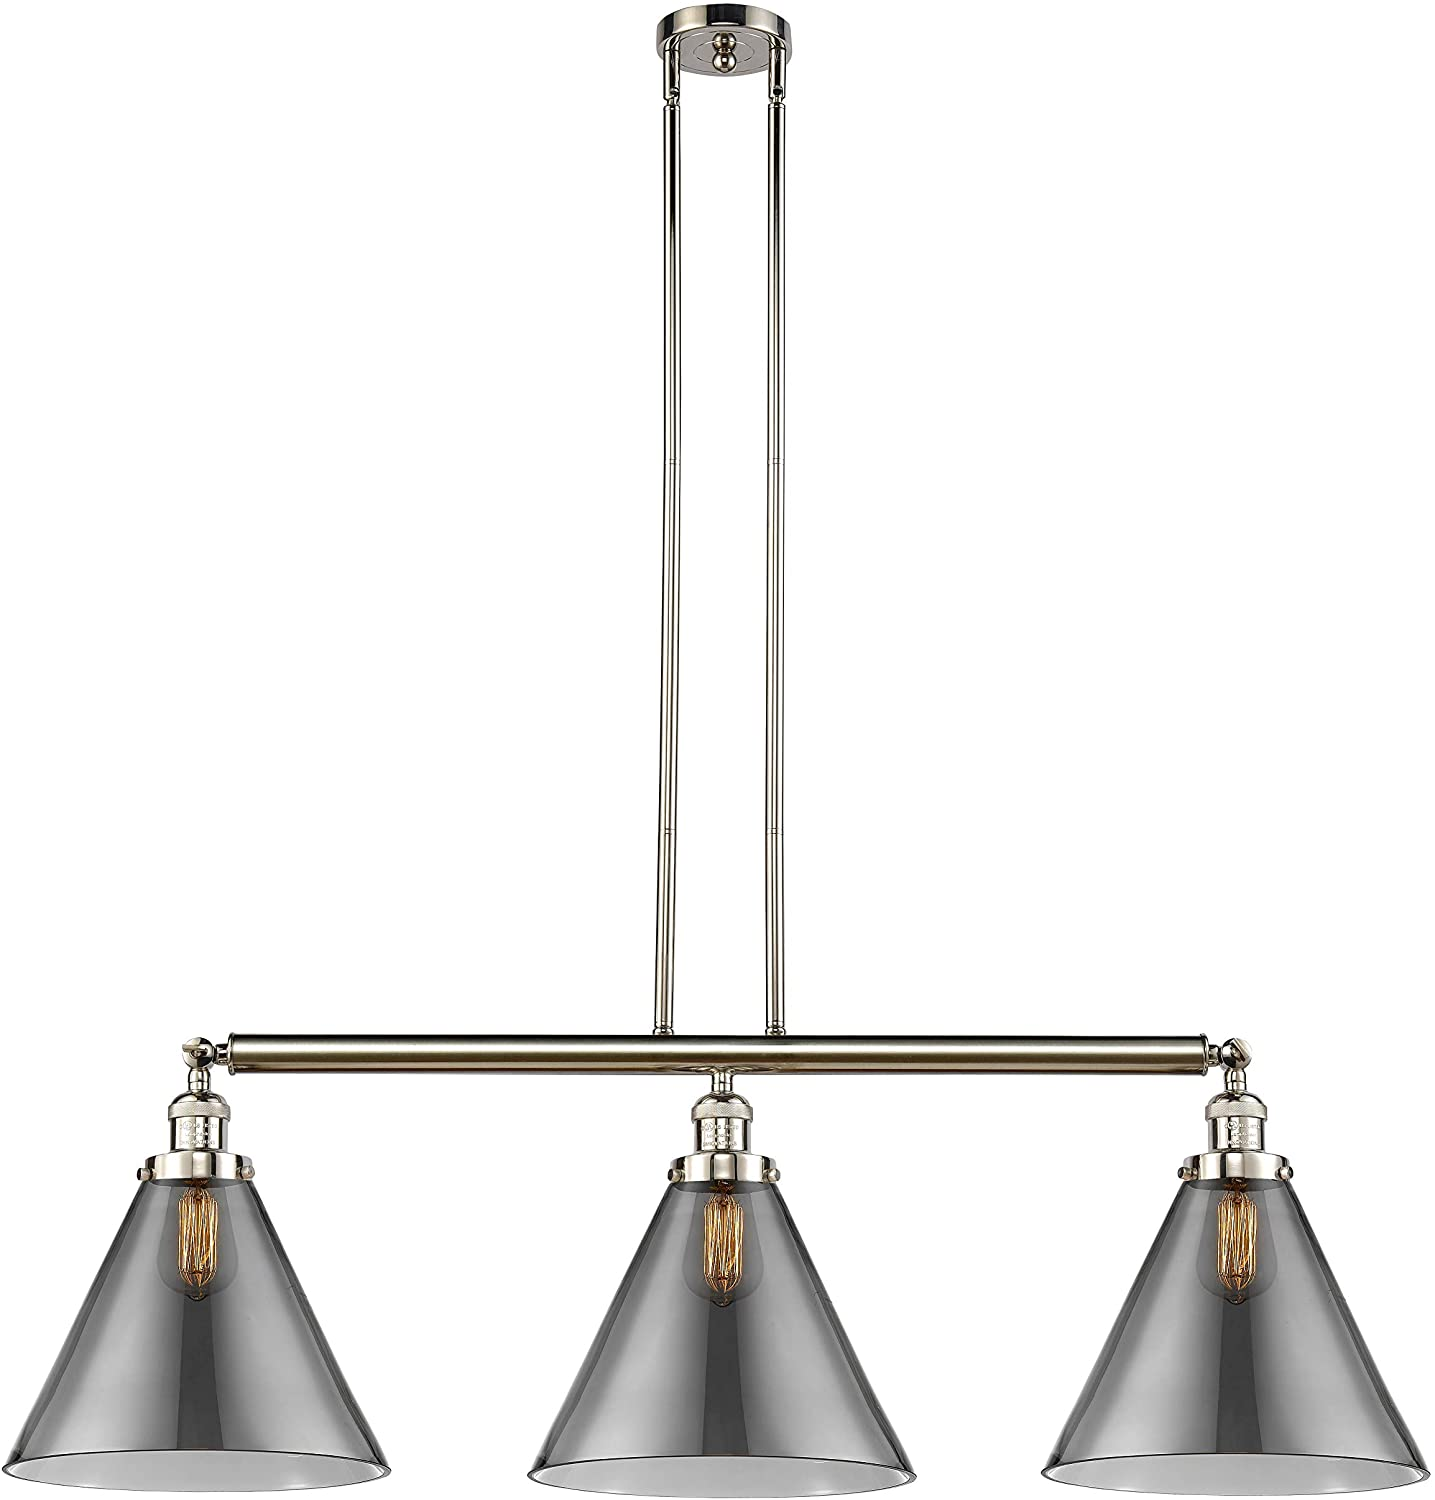 Innovations 213-PN-S-G43-L X-Large Cone 3 Island Light Part of The Franklin Restoration Collection, Polished Nickel